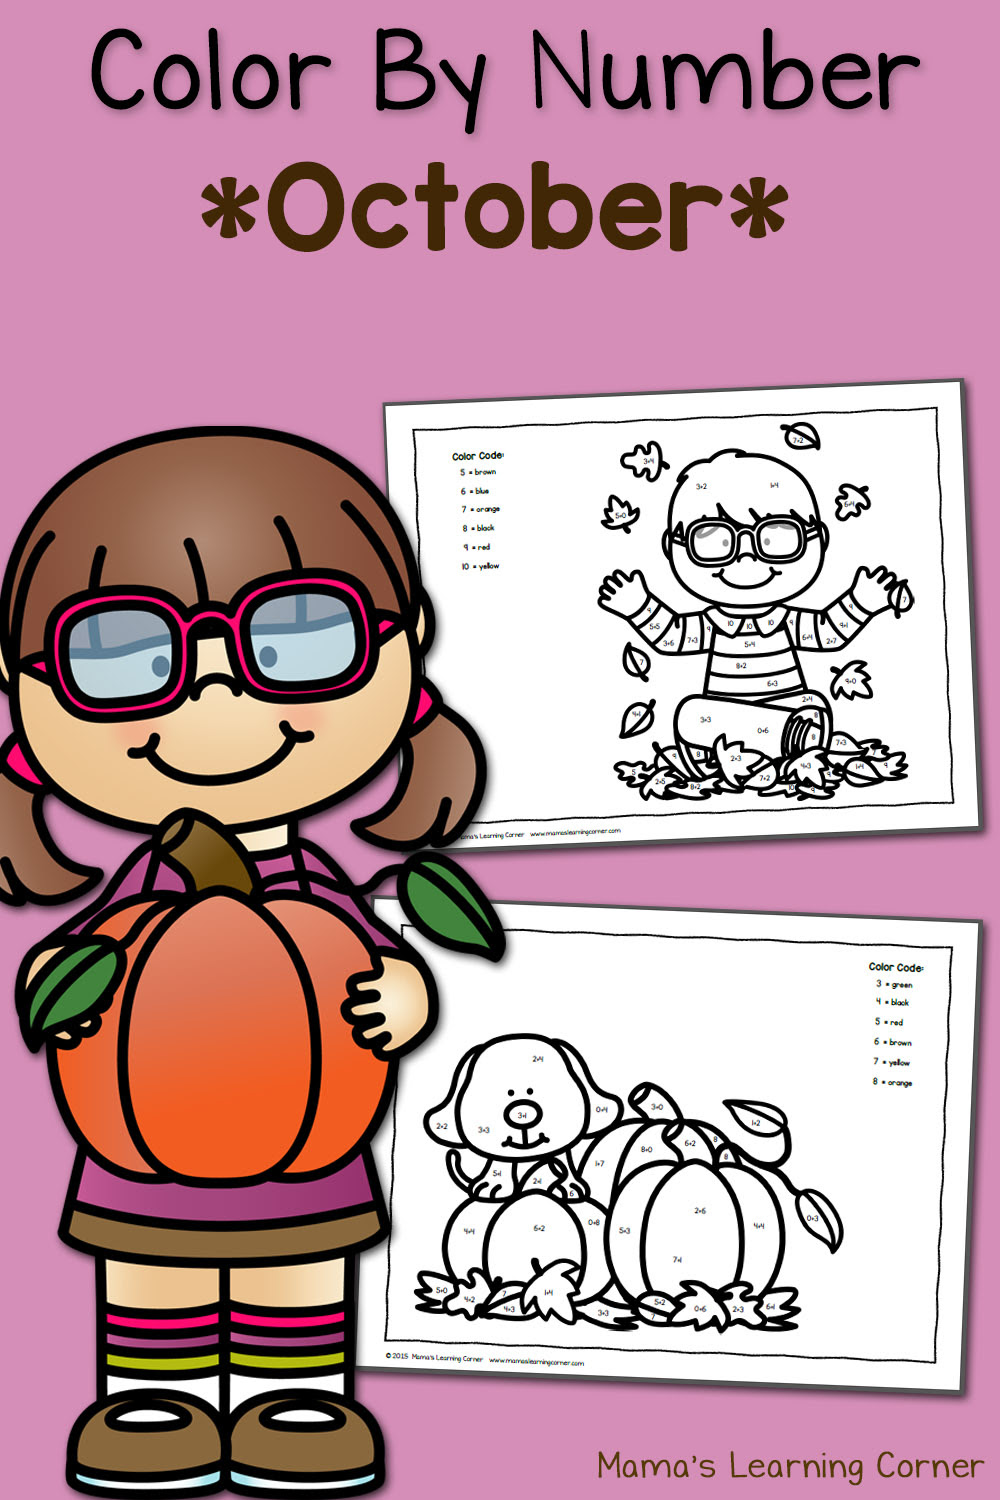 Color By Number Worksheets: October! - Mamas Learning Corner